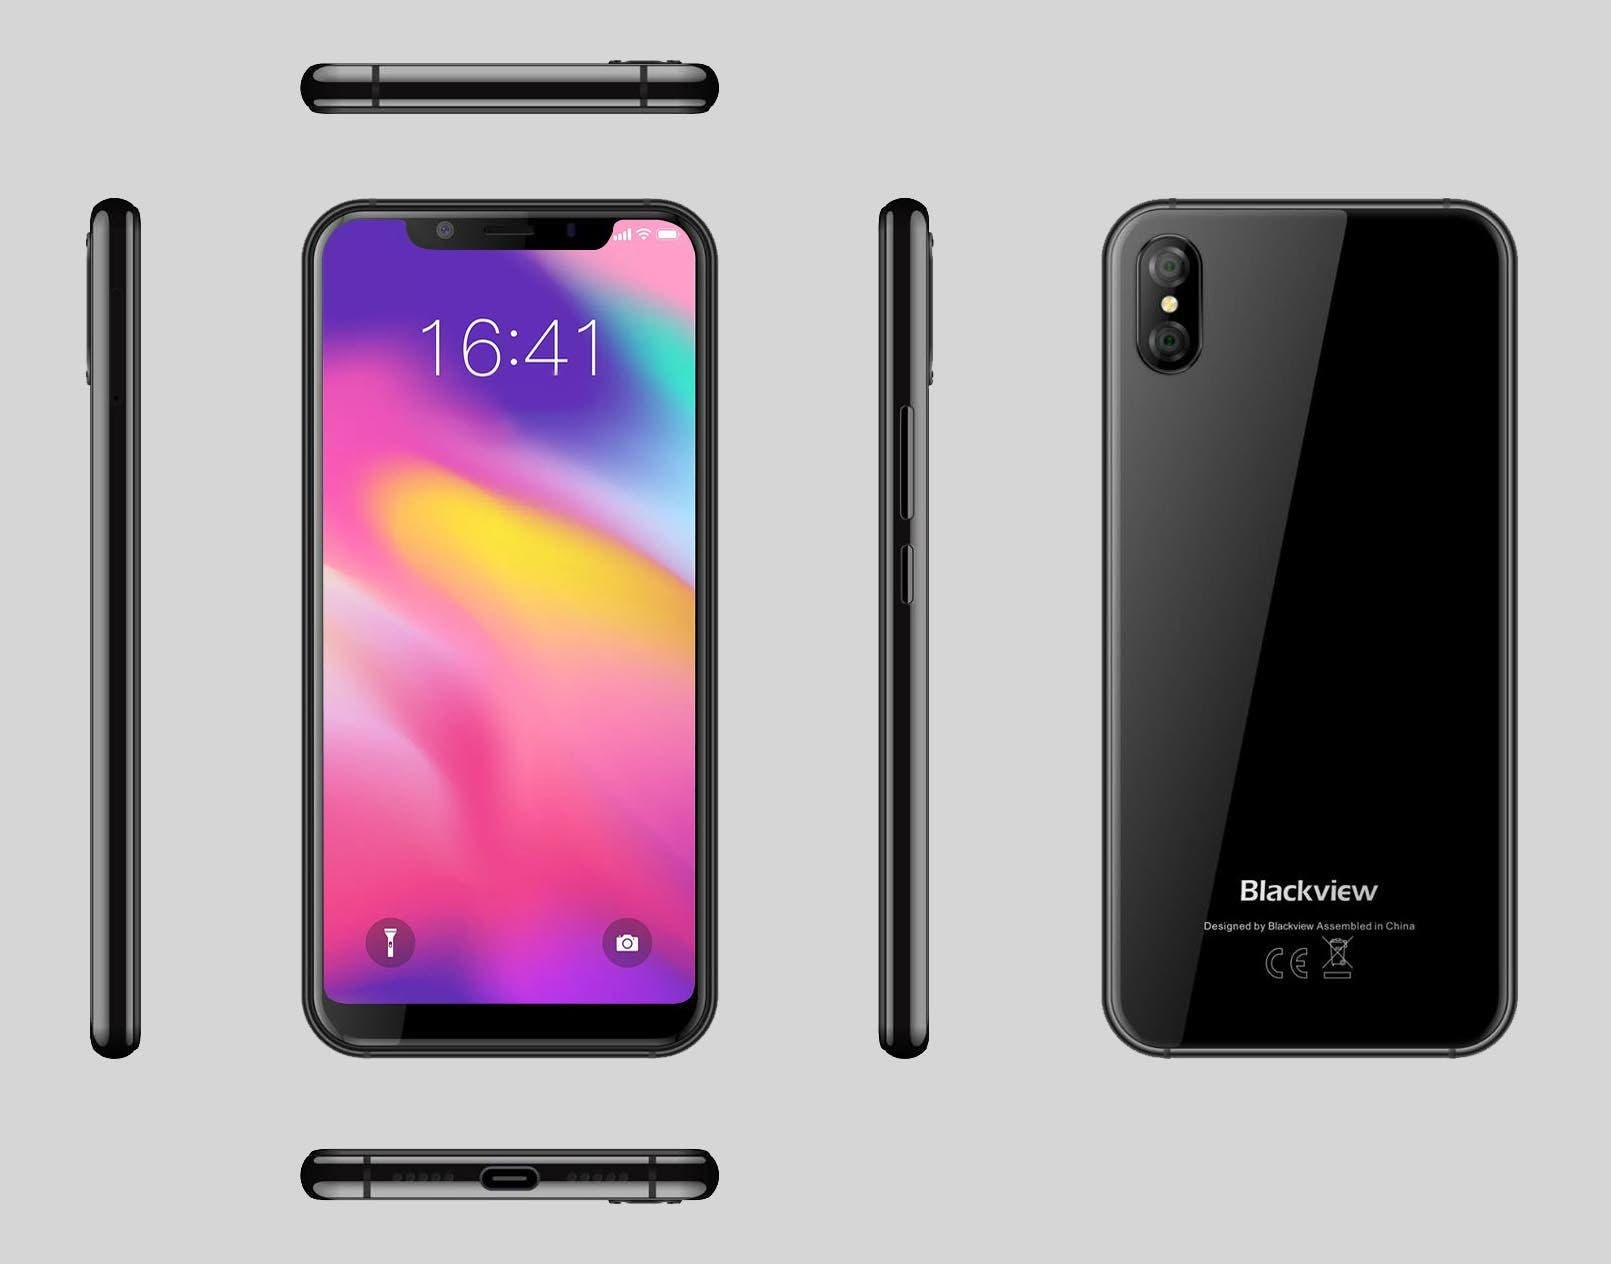 blackview iPhone x